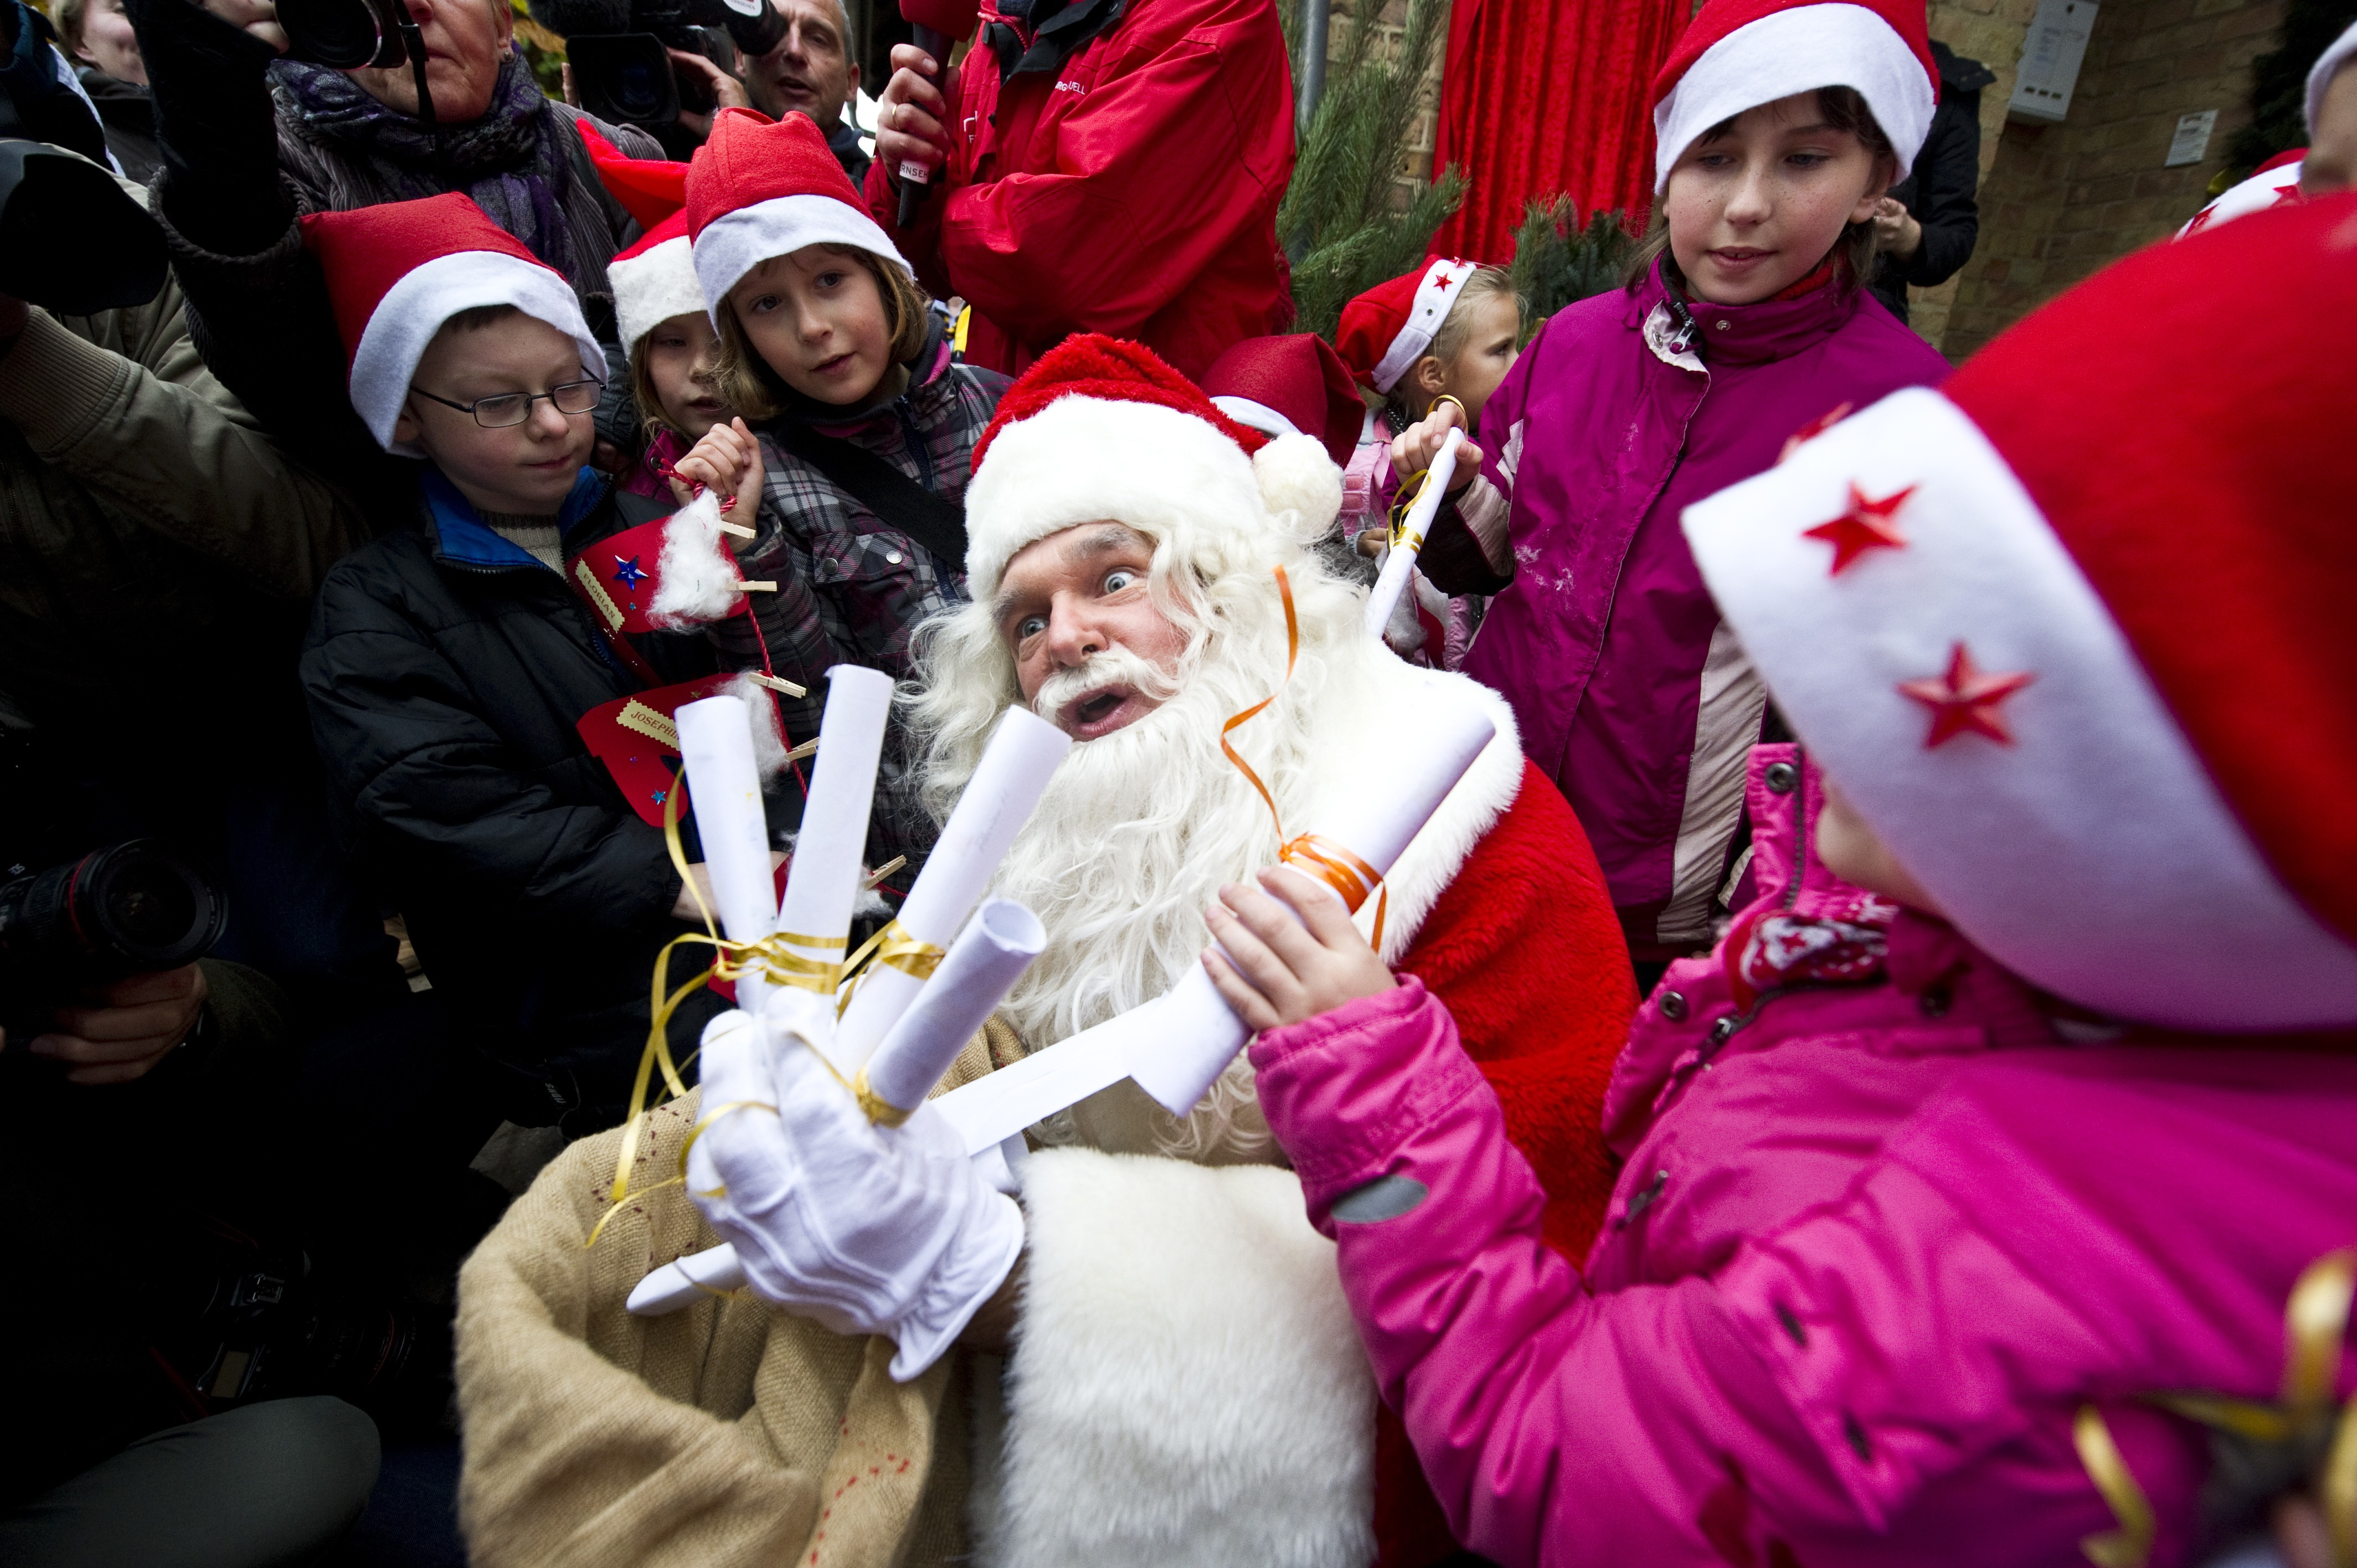 A man dressed up as Santa Claus is surro